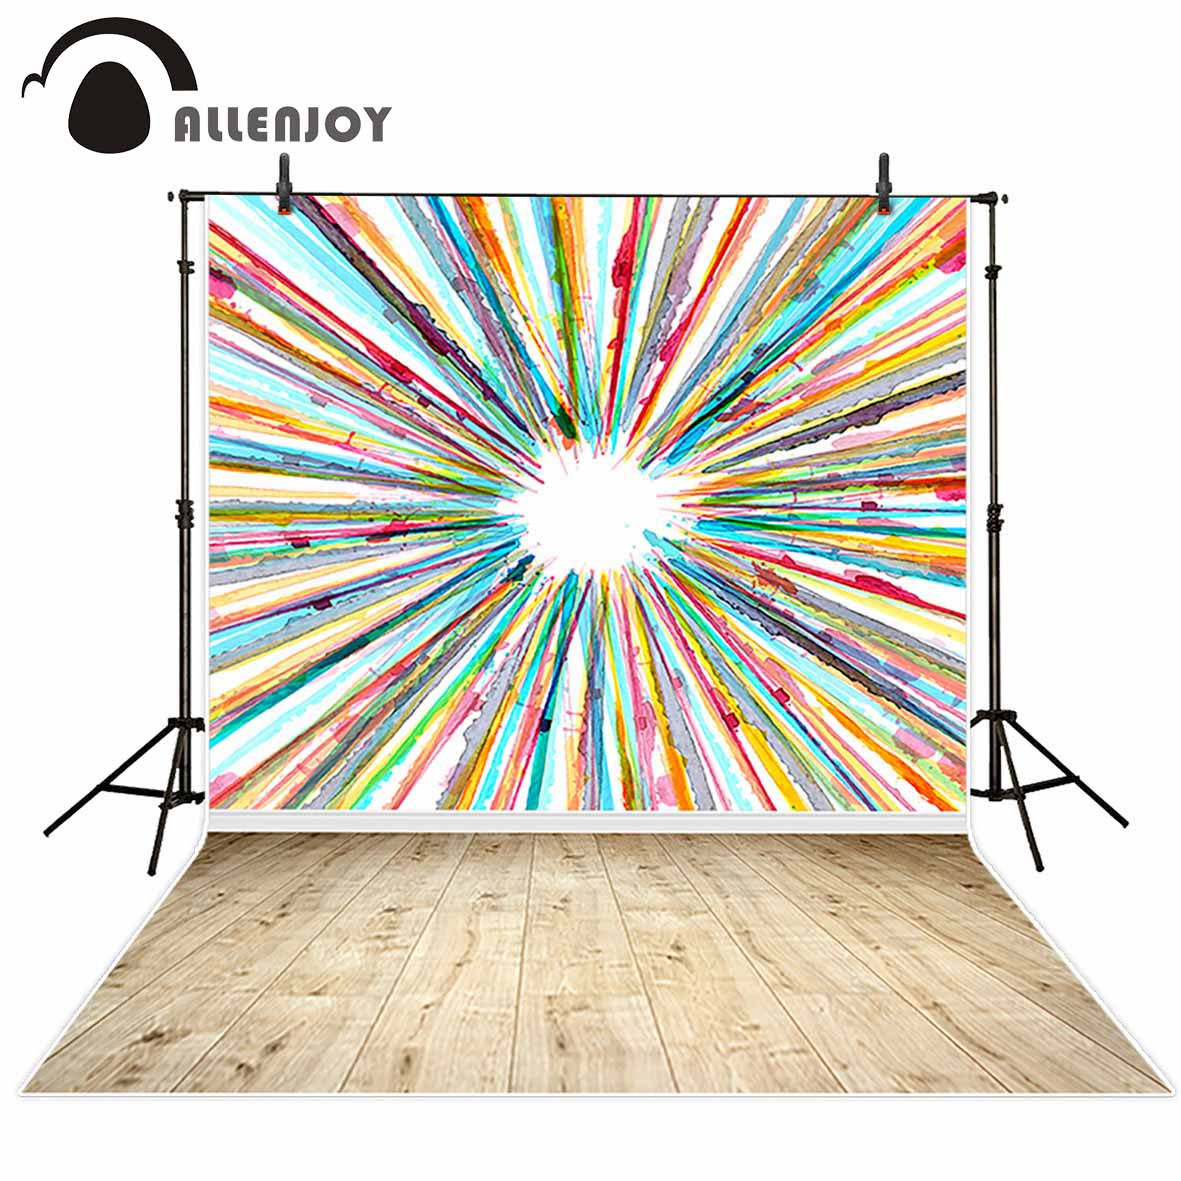 Allenjoy photography backdrop Color oil painting lines hope board innovation new background photocall customize photo printed wire universal board computer board six lines 0040400256 0040400257 used disassemble